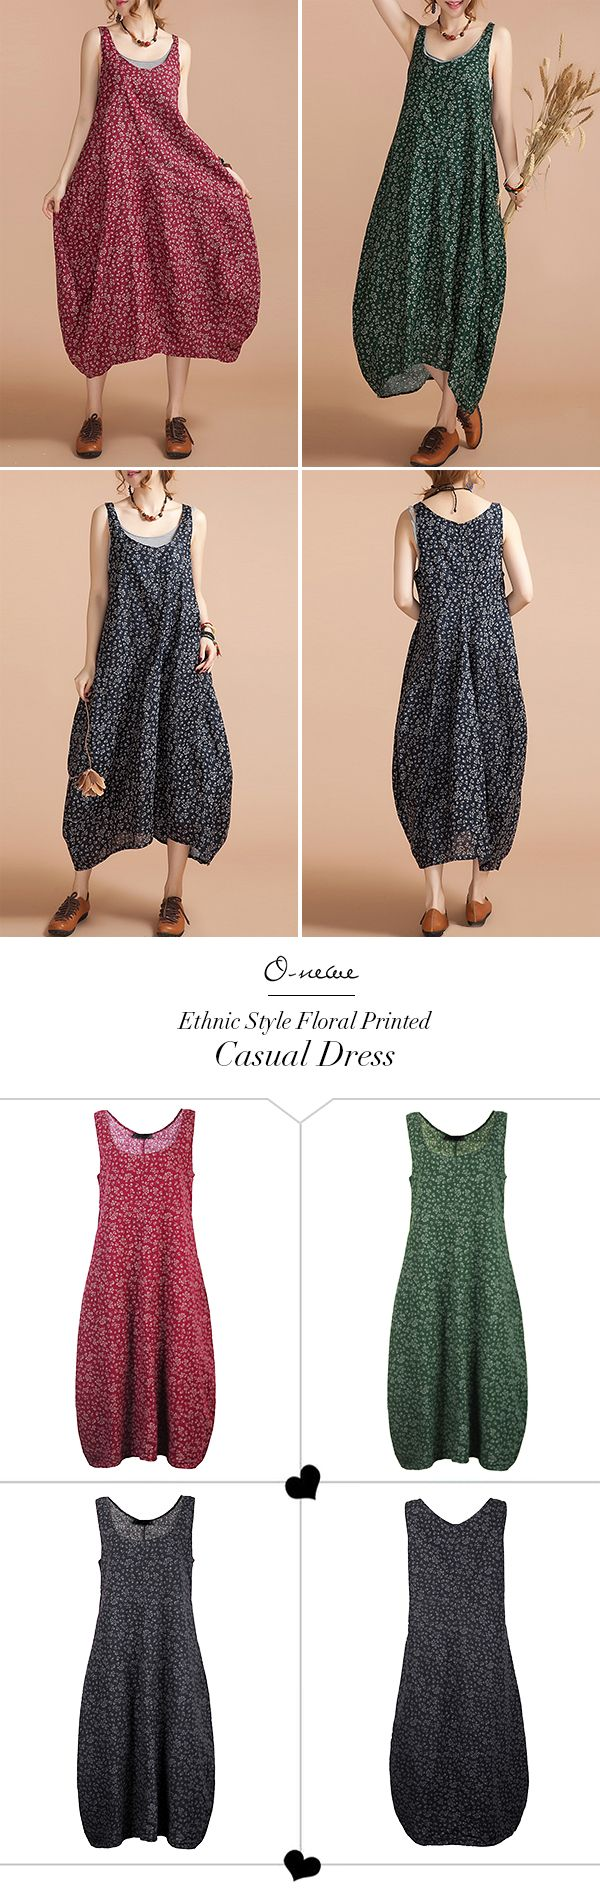 US$ 17.87 O-Newe Ethnic Style Strap Floral Printed Lantern Maxi Sundress For Women